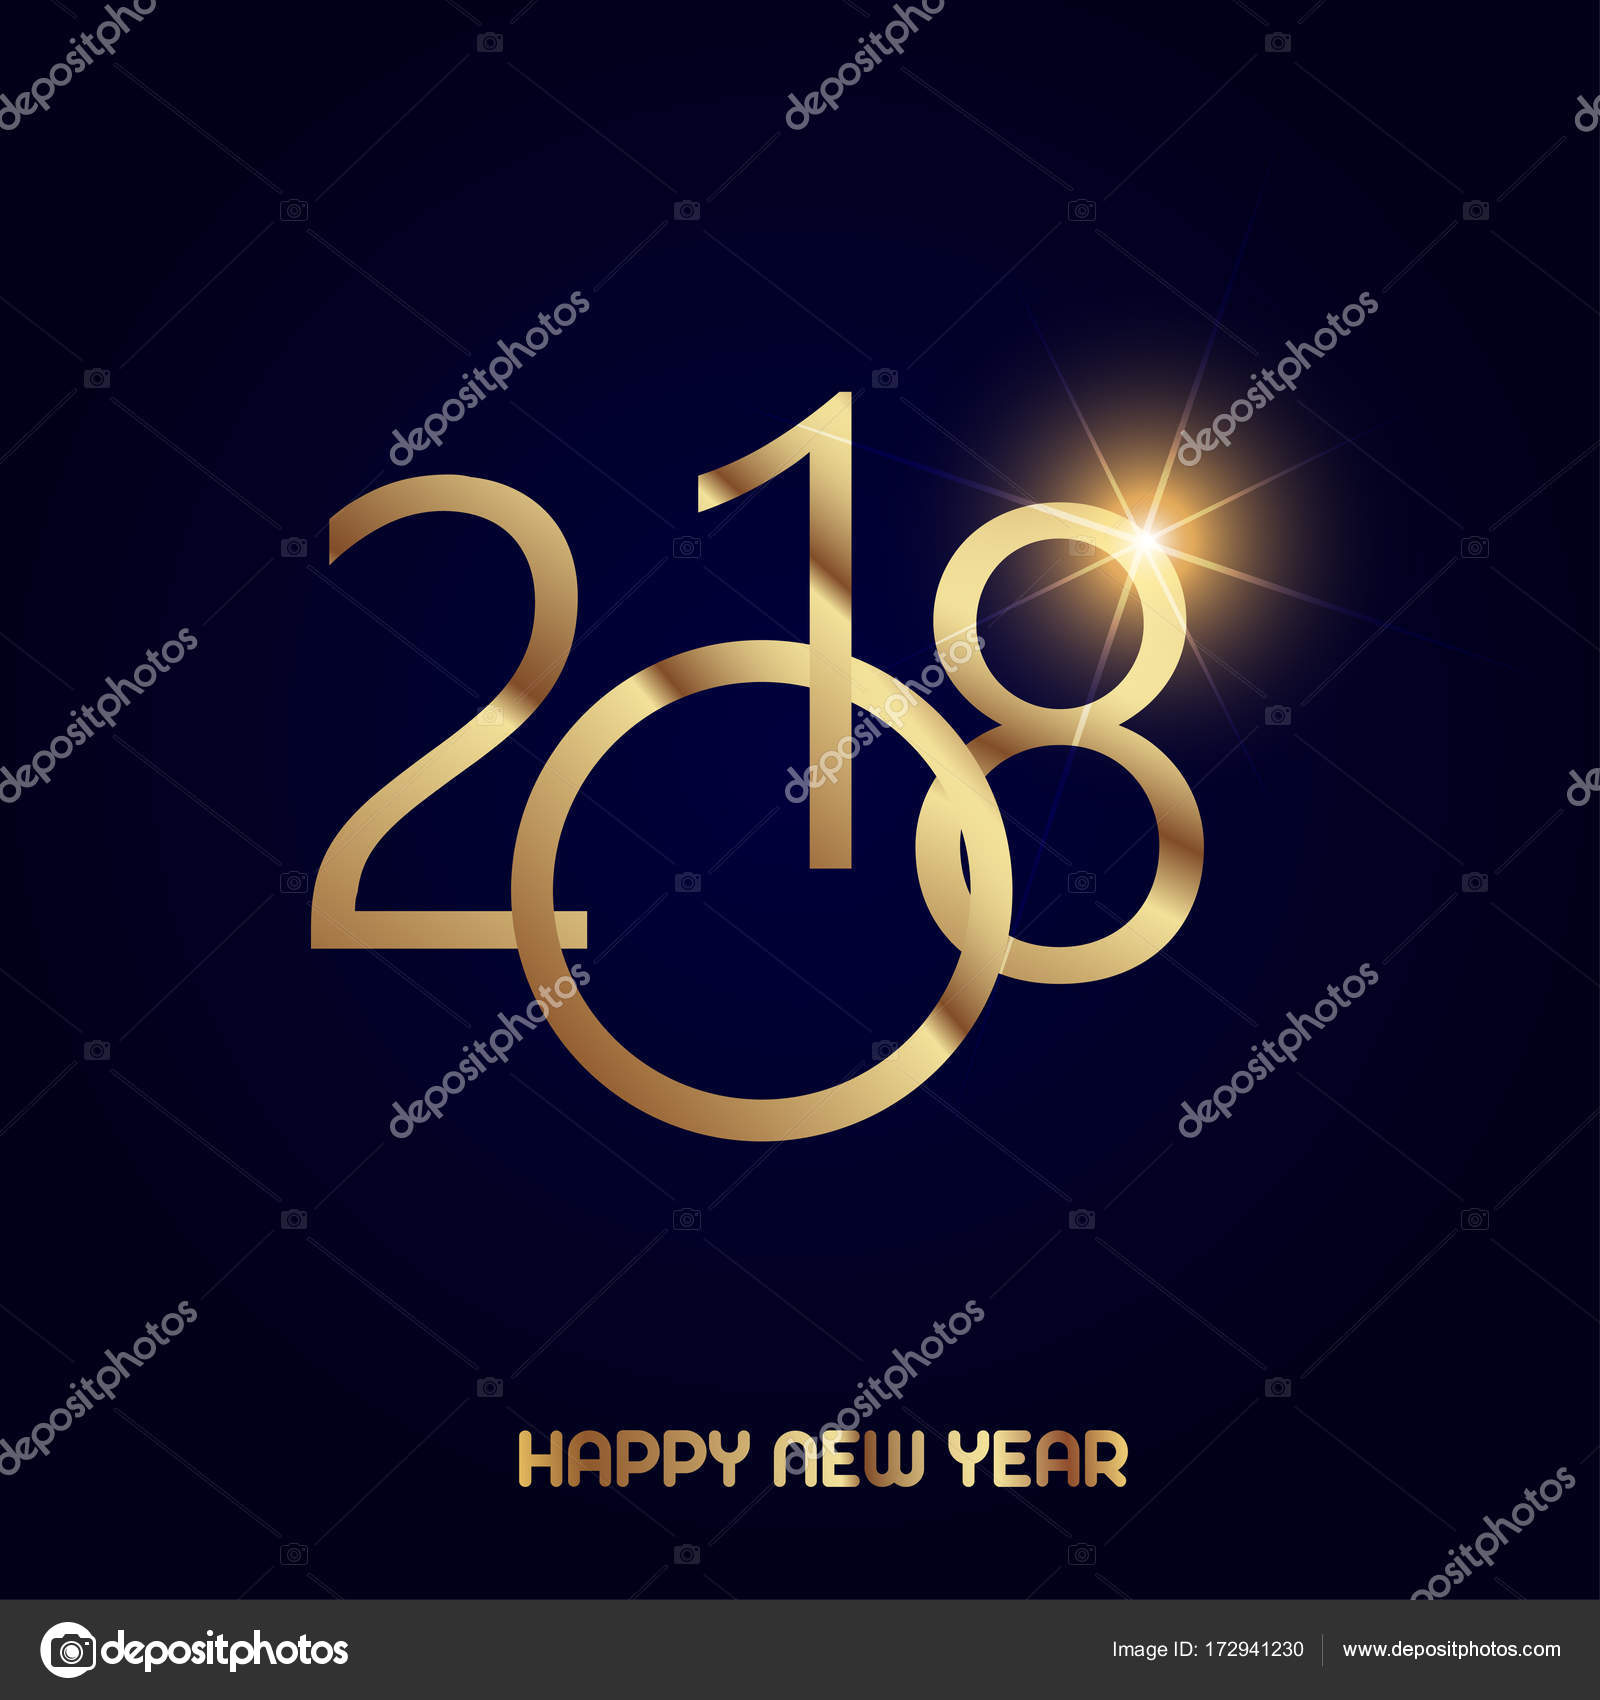 Happy New Year Greeting Card With Shining Gold Text On Black